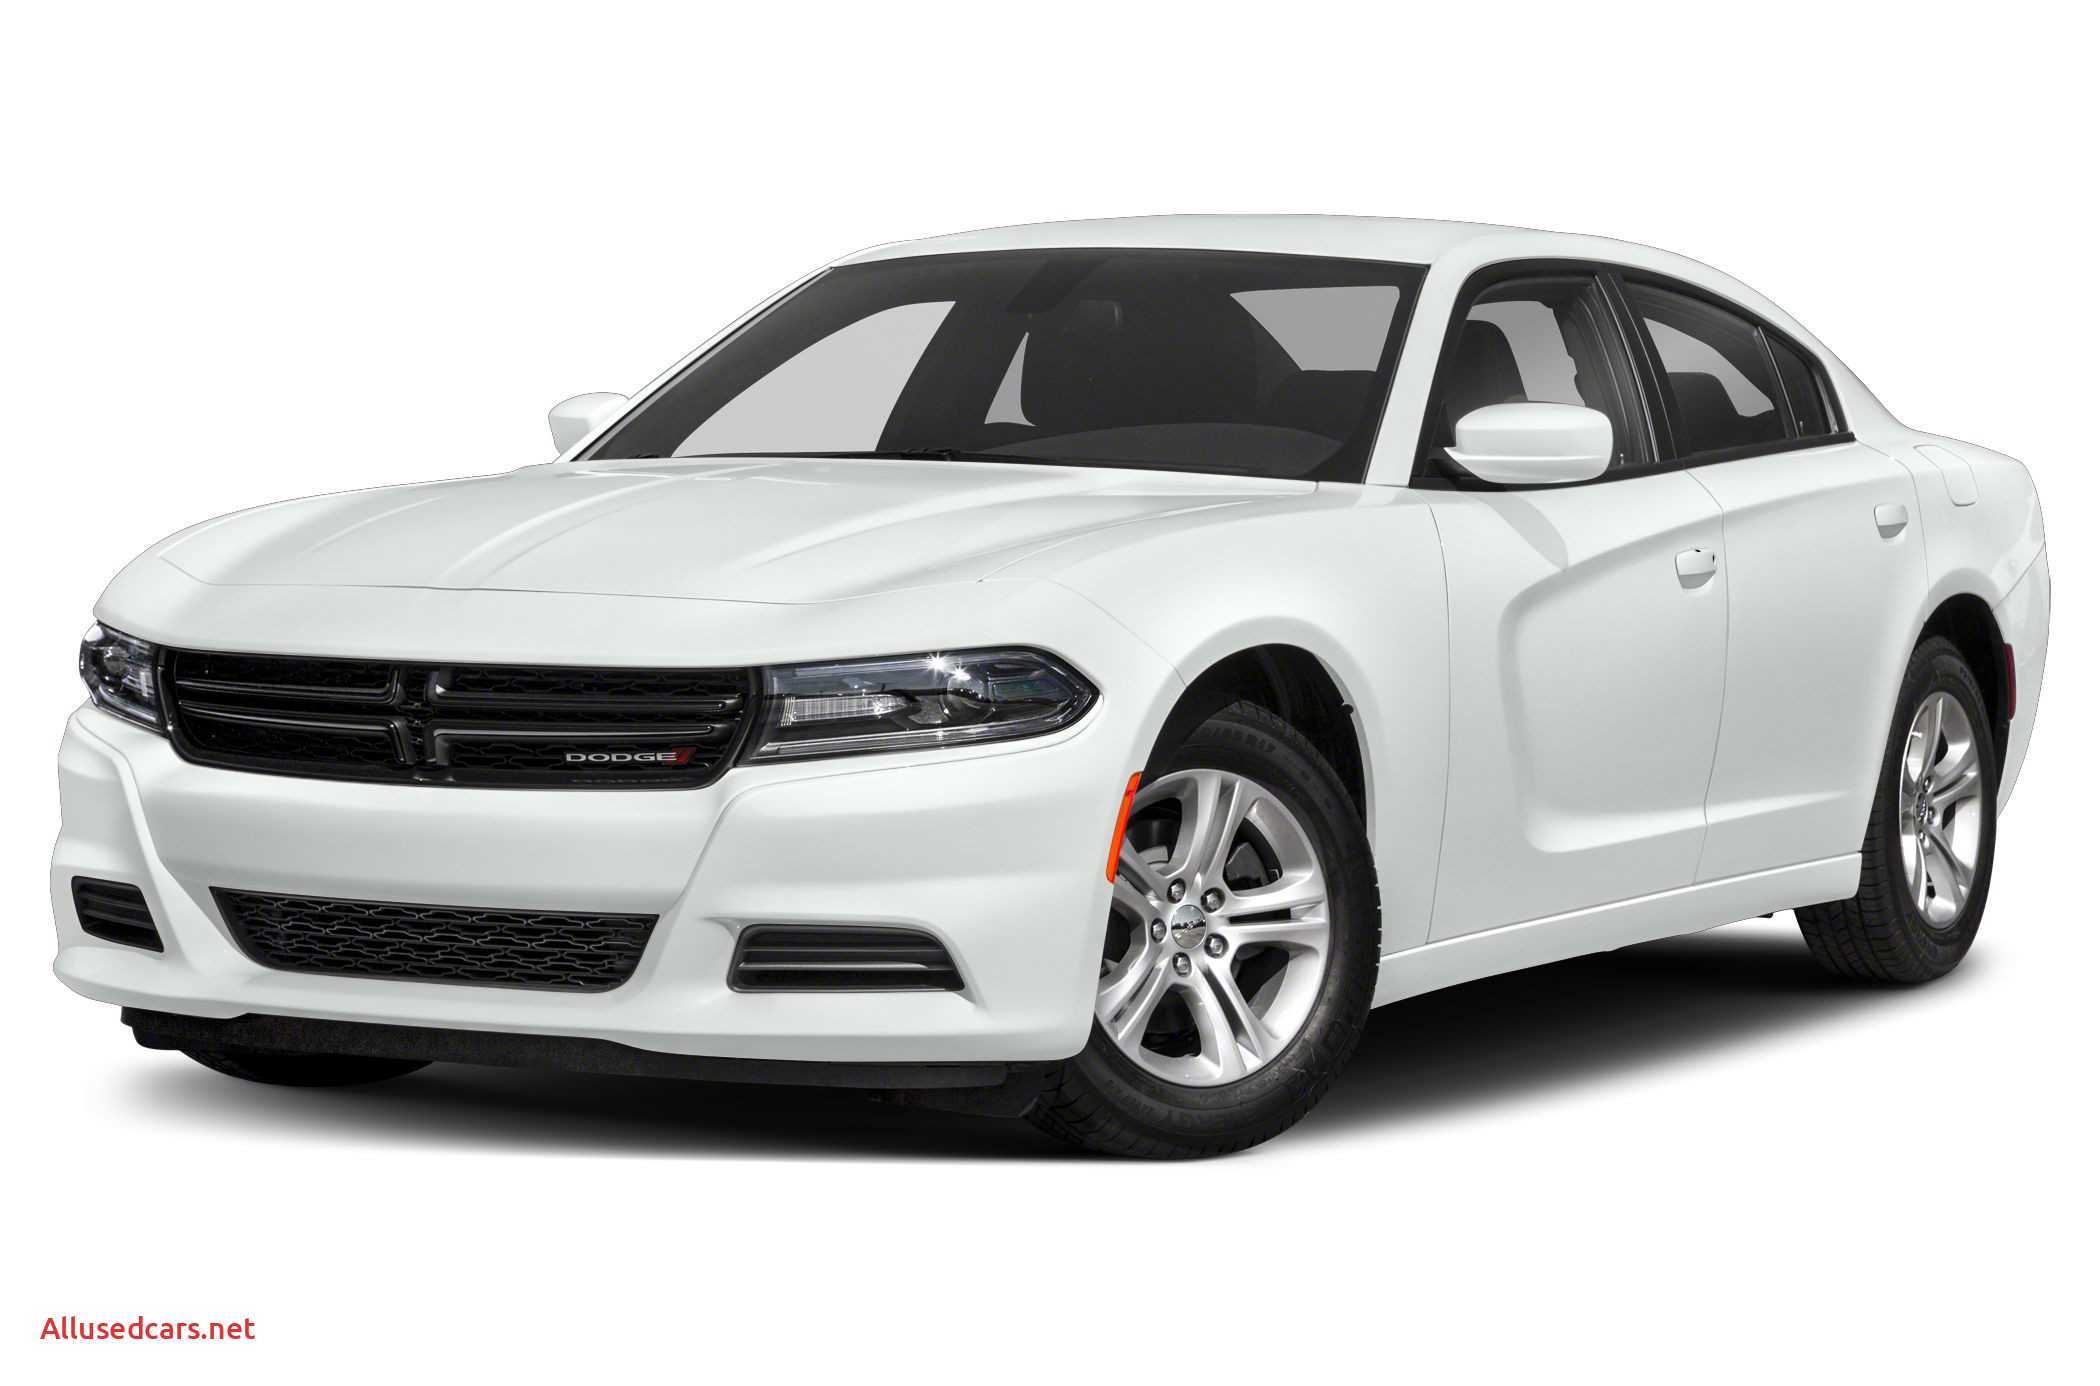 2018 Dodge Charger Sxt Best Of 2020 Dodge Charger Sxt 4dr Rear Wheel Drive Sedan Pricing and Options